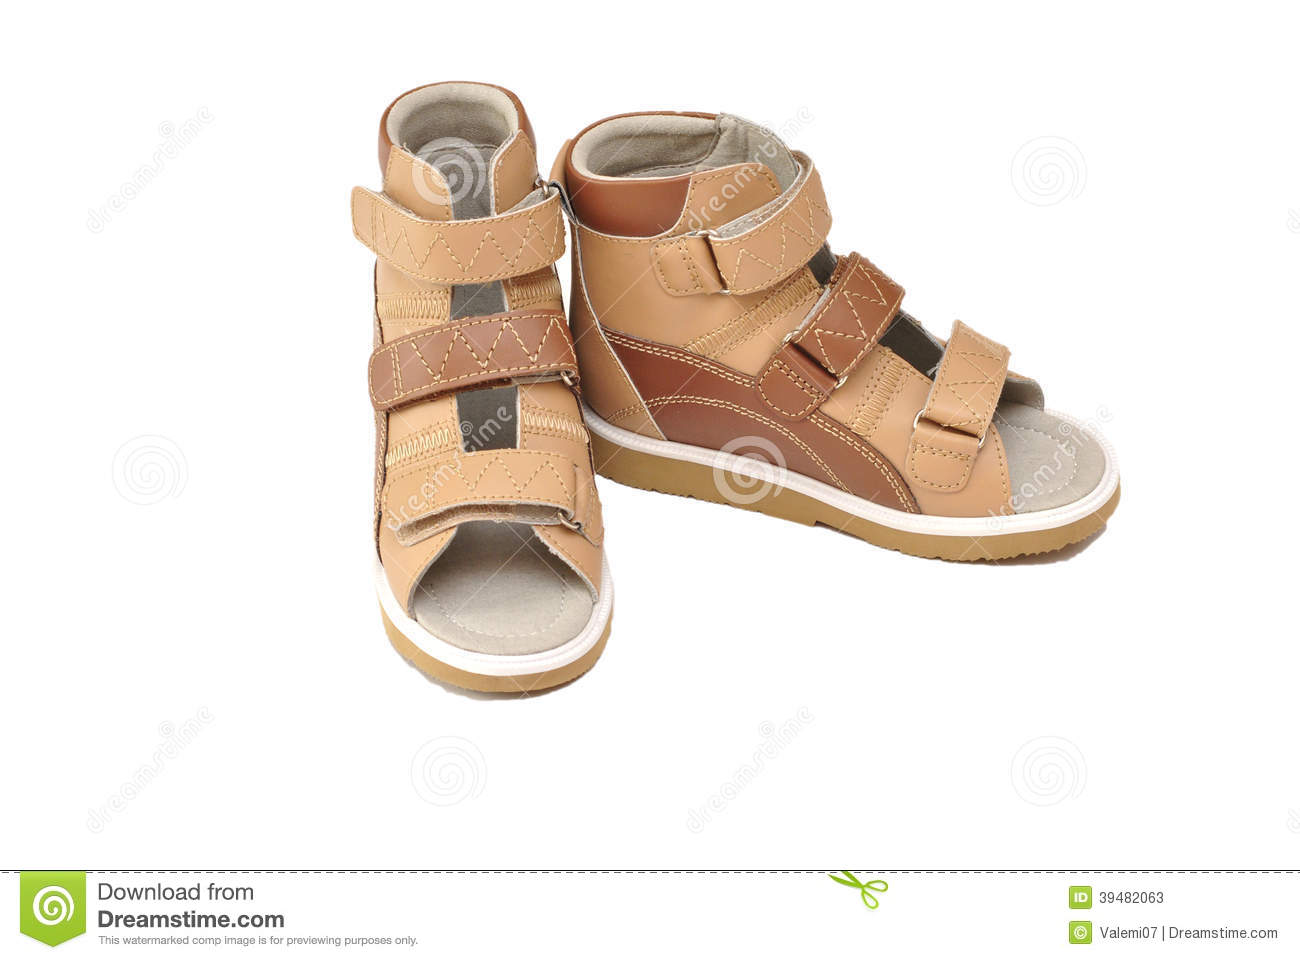 Orthopedic Shoes For Children Stock Photo - Image: 39482063Orthopedic Shoes For Kids